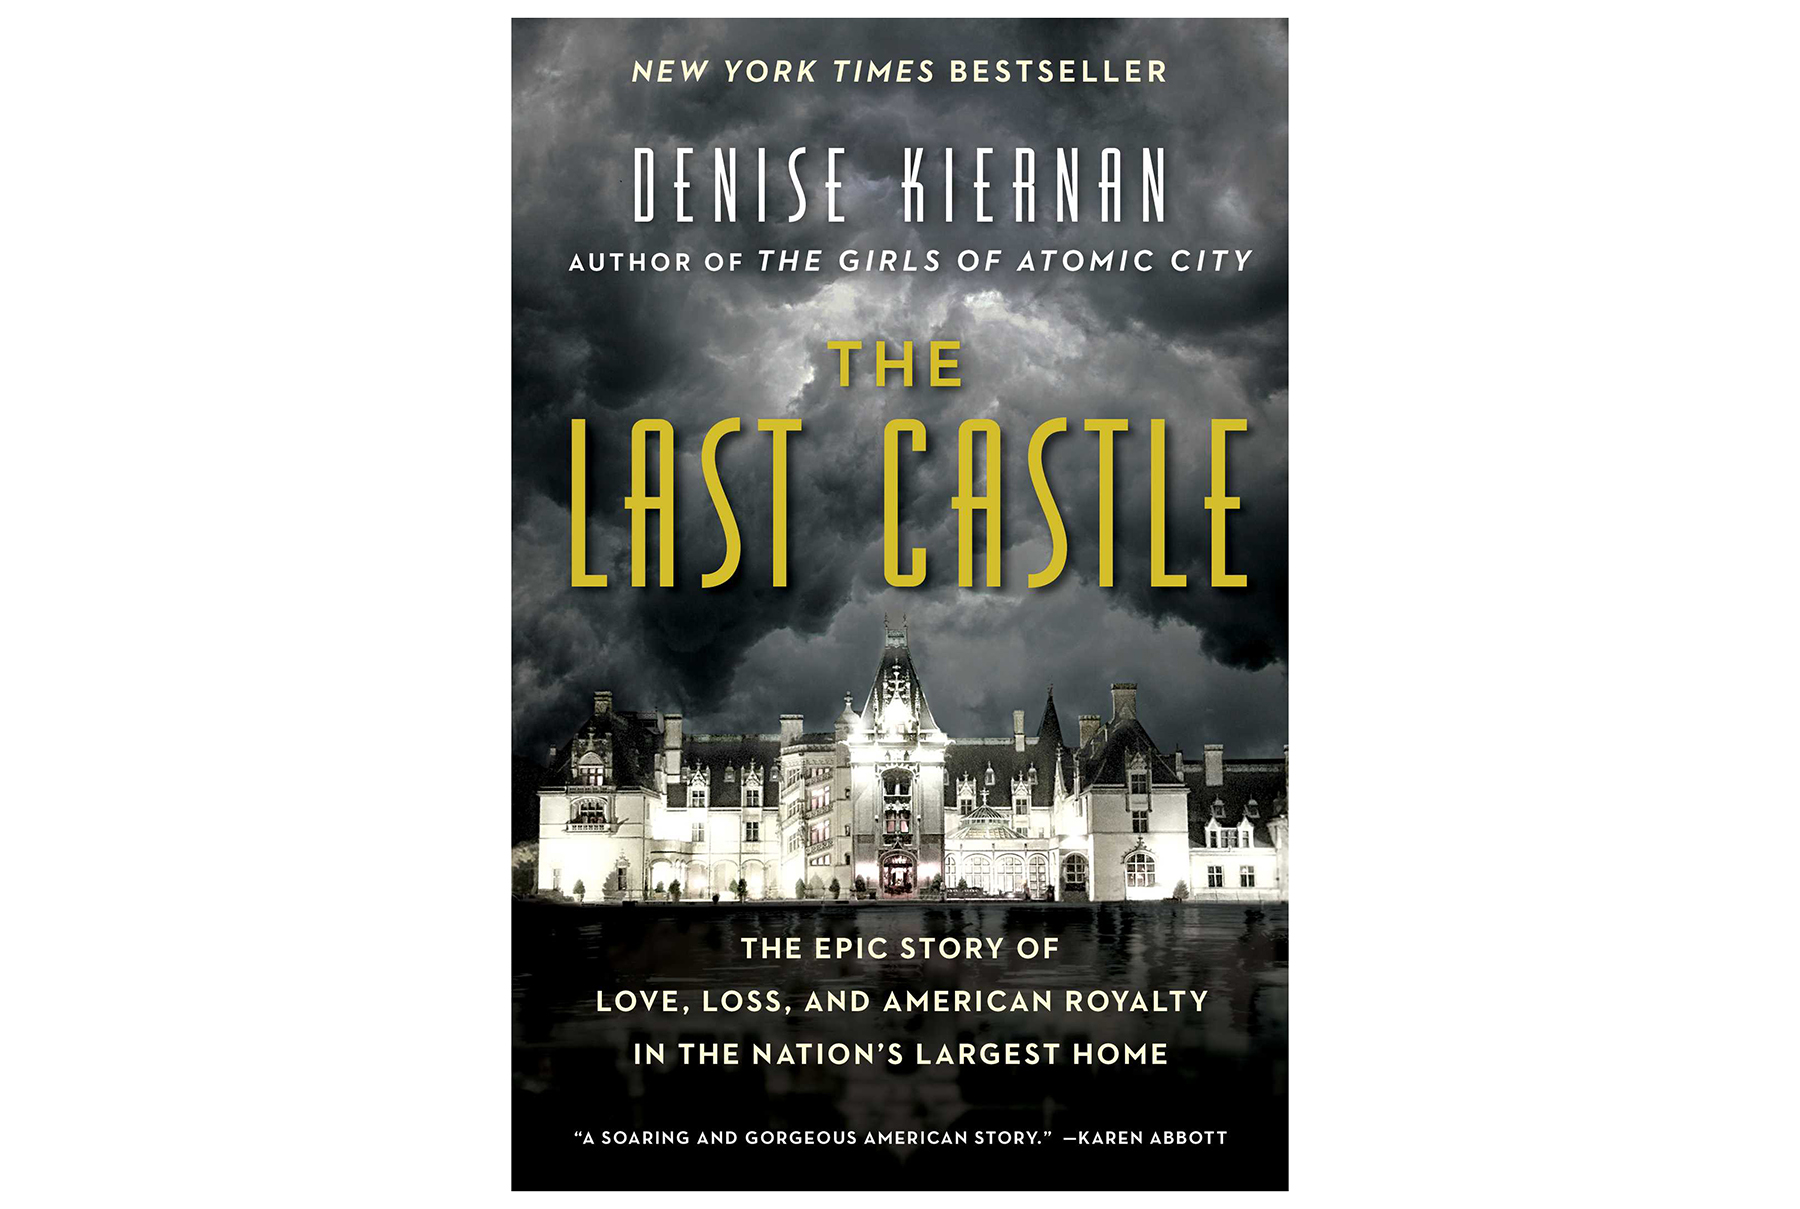 The Last Castle: The Epic Story of Love, Loss, and American Royalty in the Nation's Largest Home, by Denise Kiernan